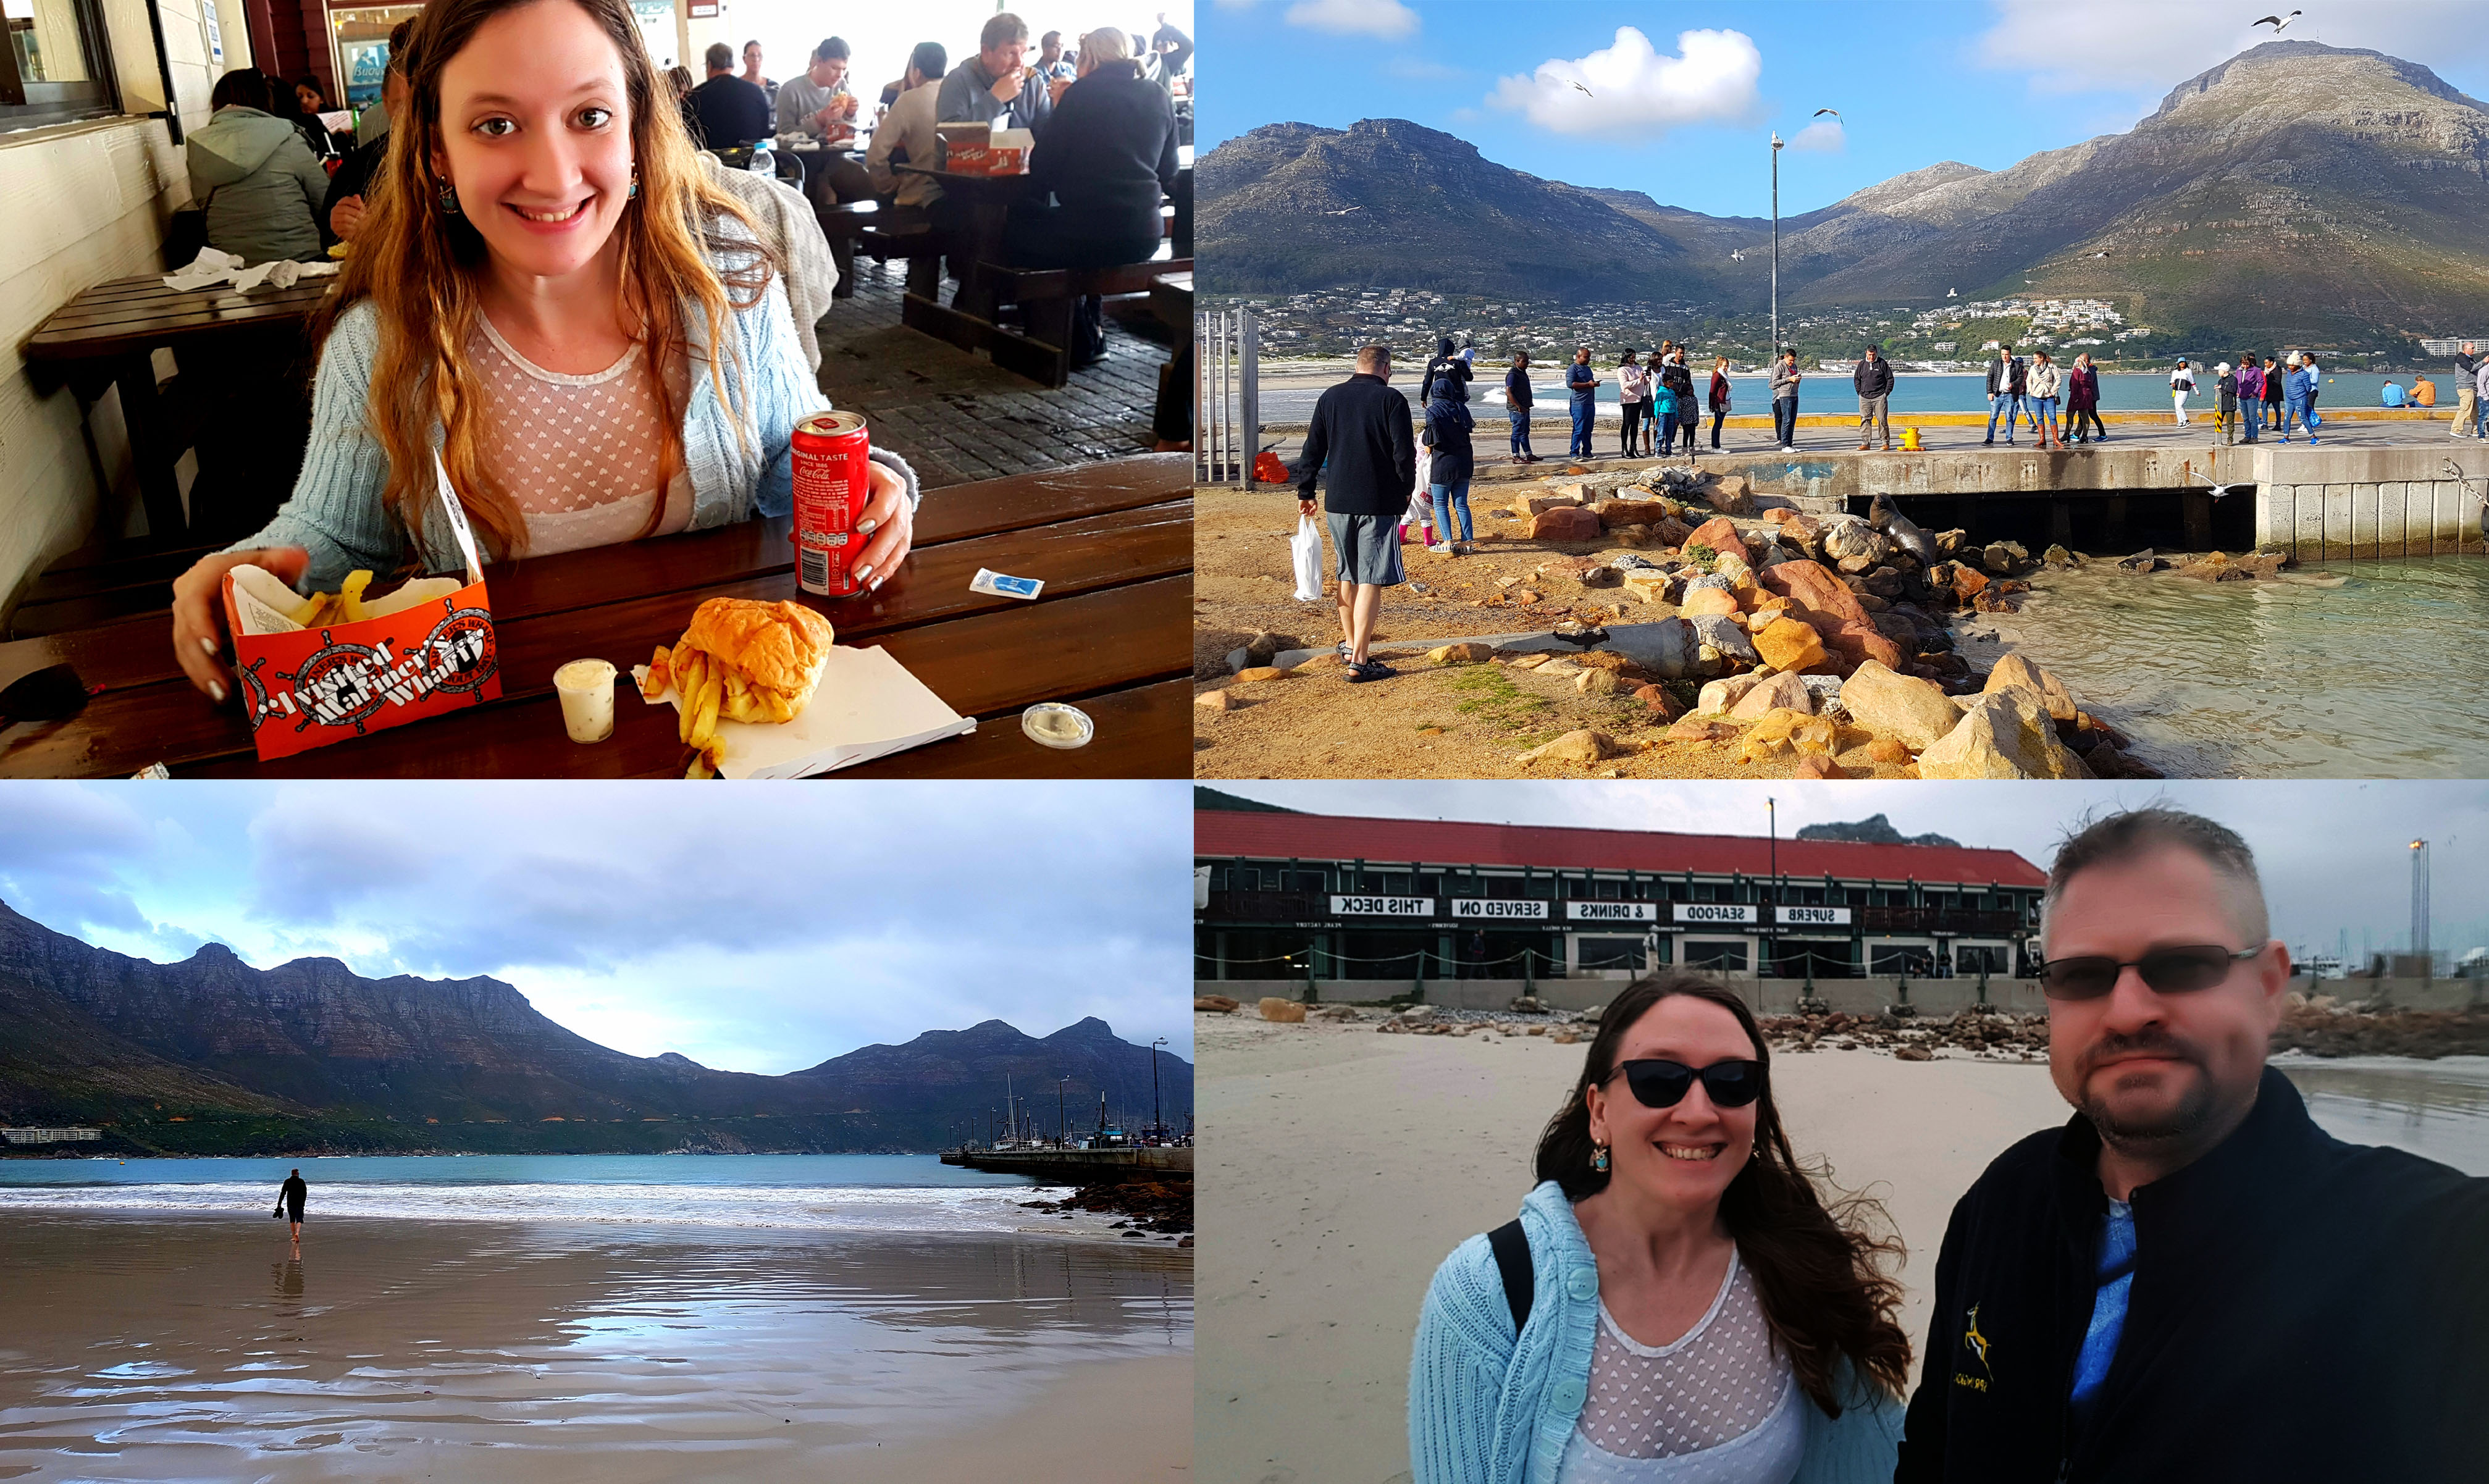 Next stop, Hout Bay! The weather was a tad chilly but just right for a road trip. I thoroughly enjoyed my slap chips with tartare sauce from Mariner's Wharf and we walked around looking at the seals and gulls.